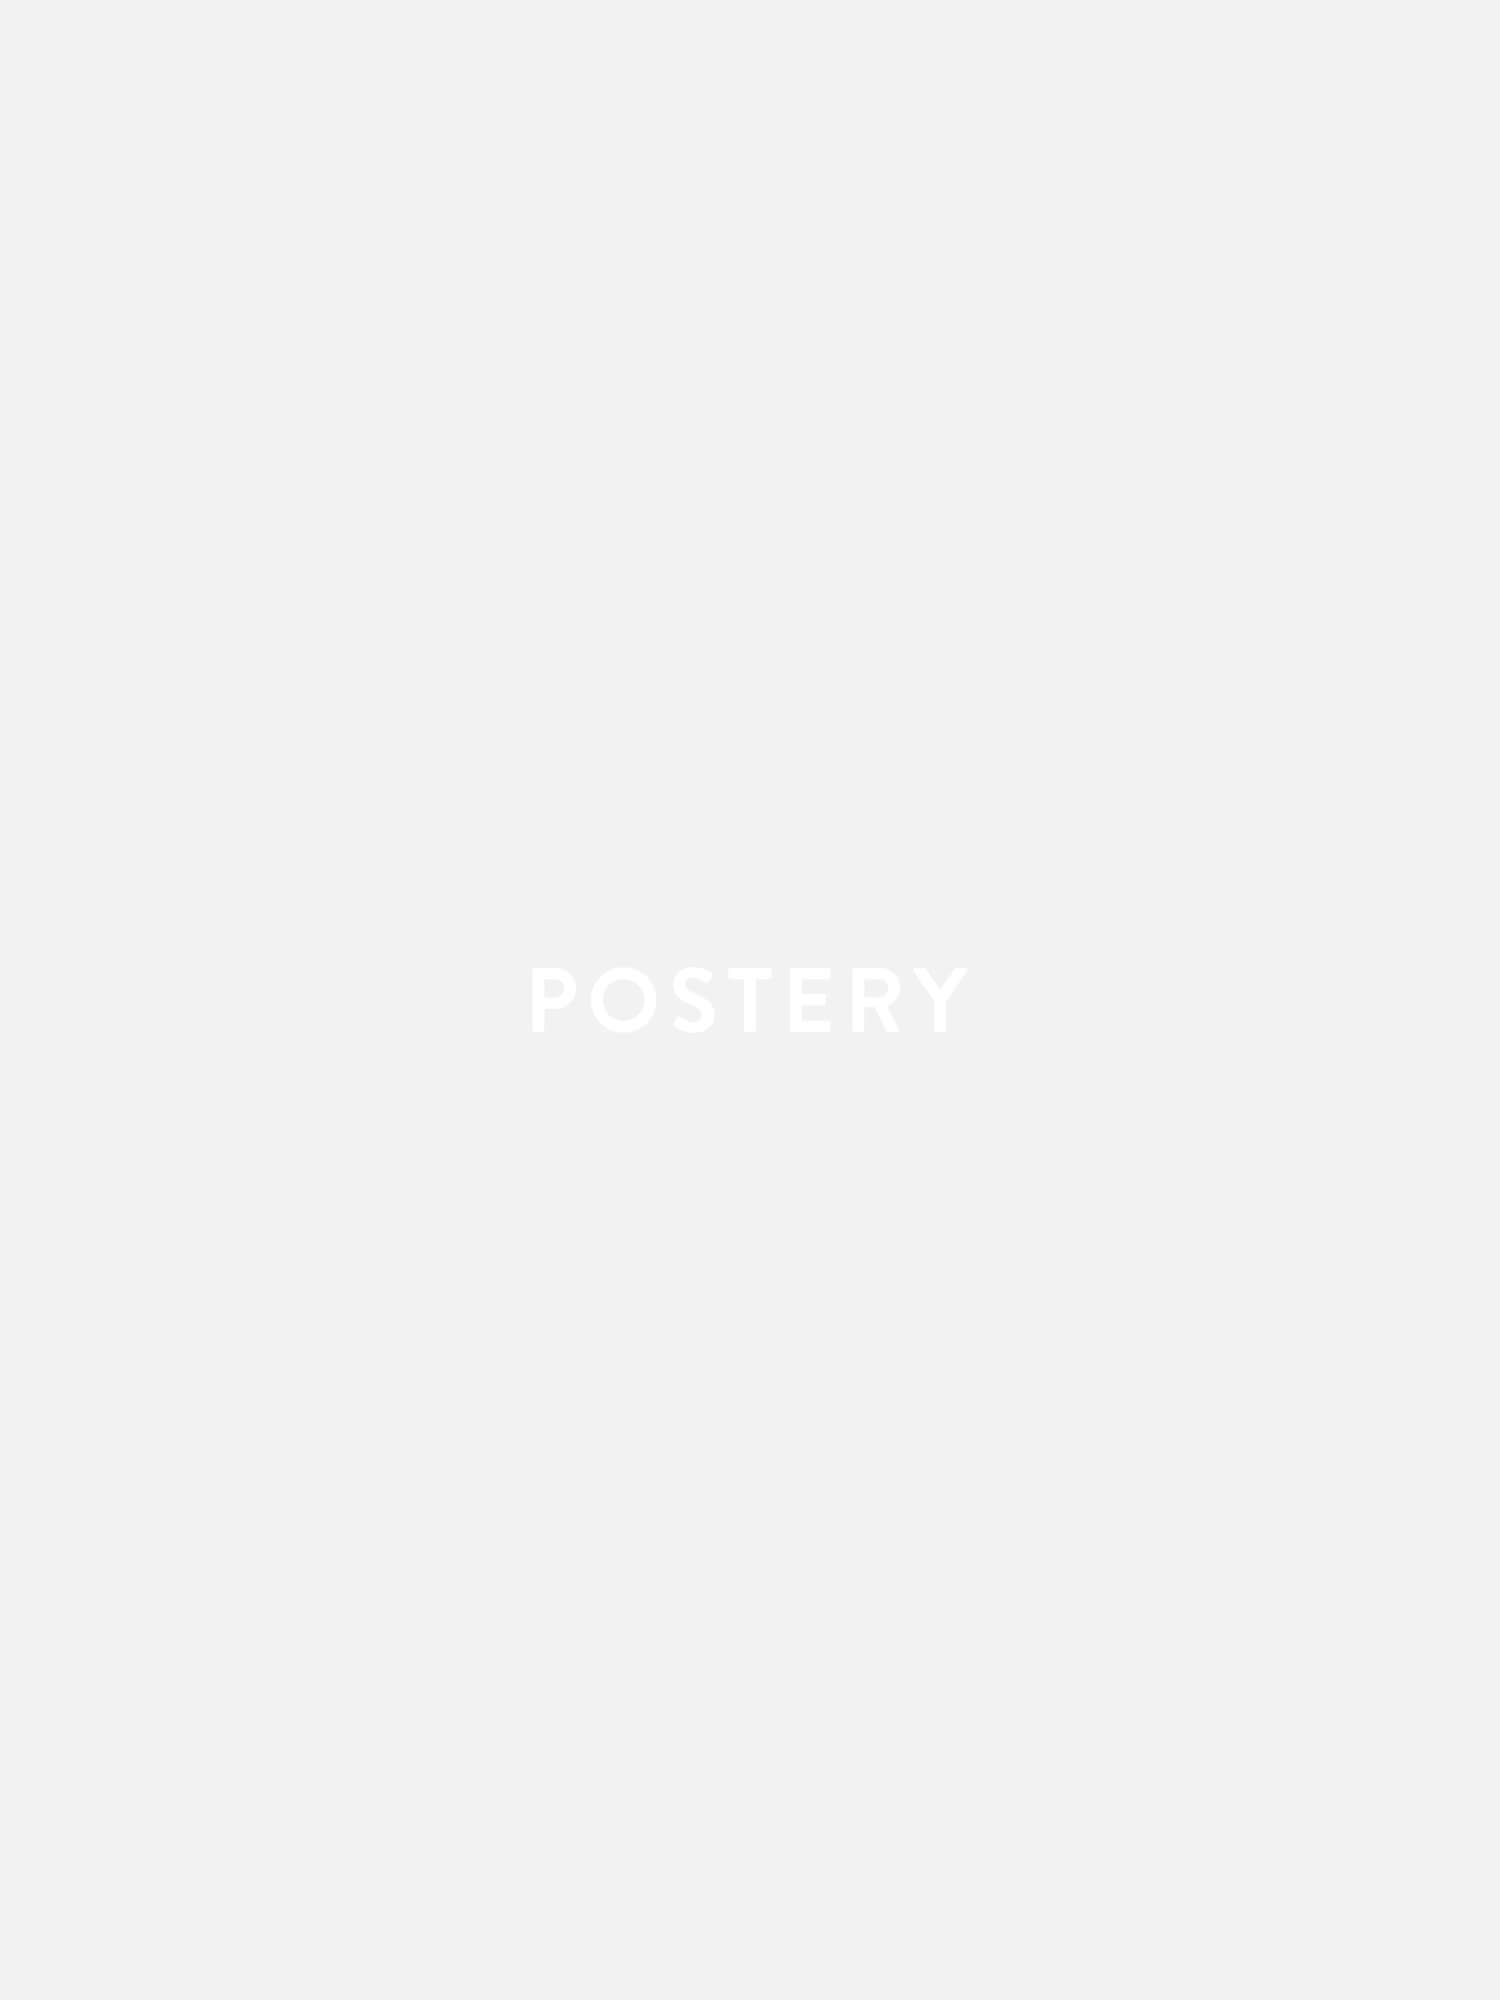 Sailboat at Sea Poster